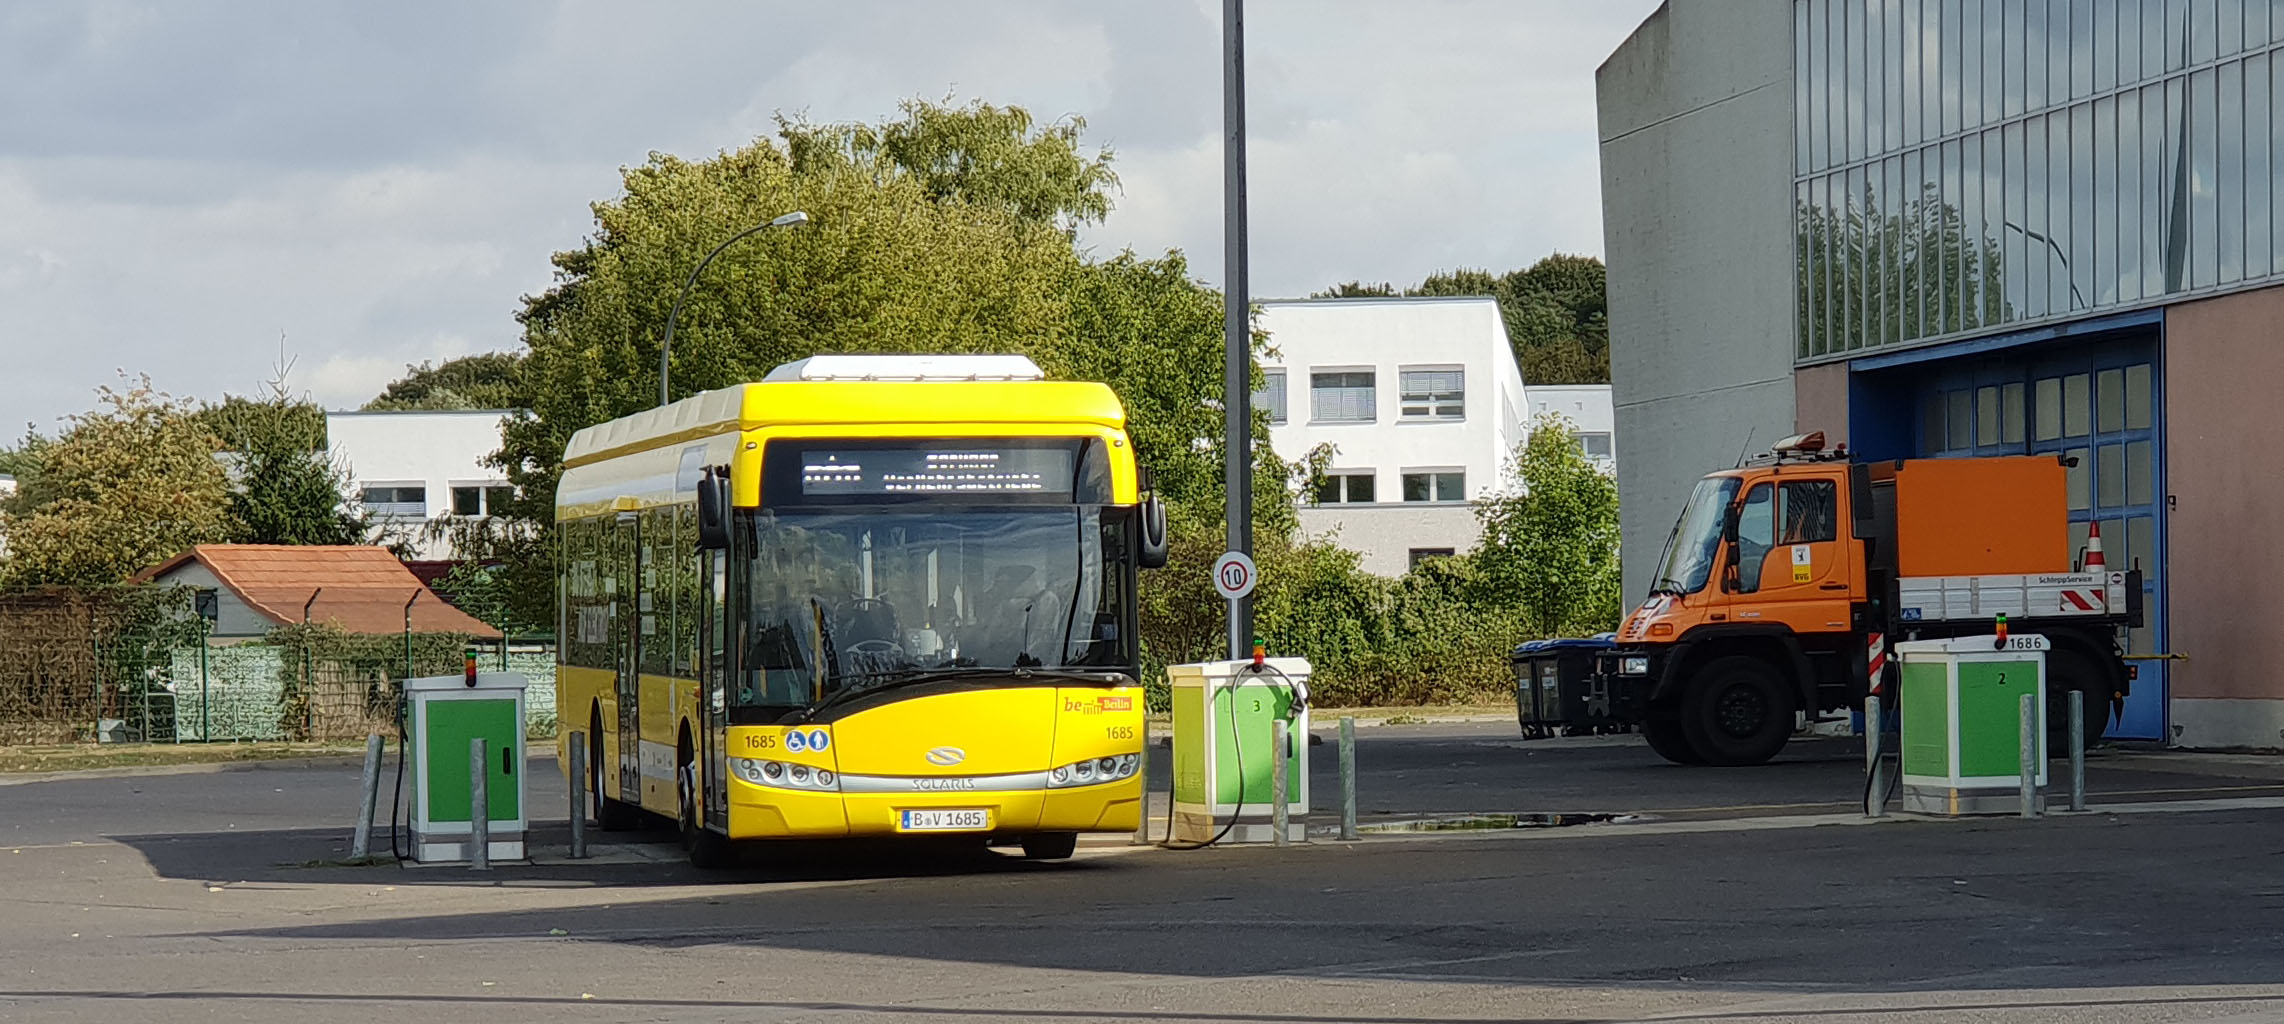 Foto: Bus 1685, Typ Solaris Urbino 12 Electric, Hof Siegfriedstr., September 2018